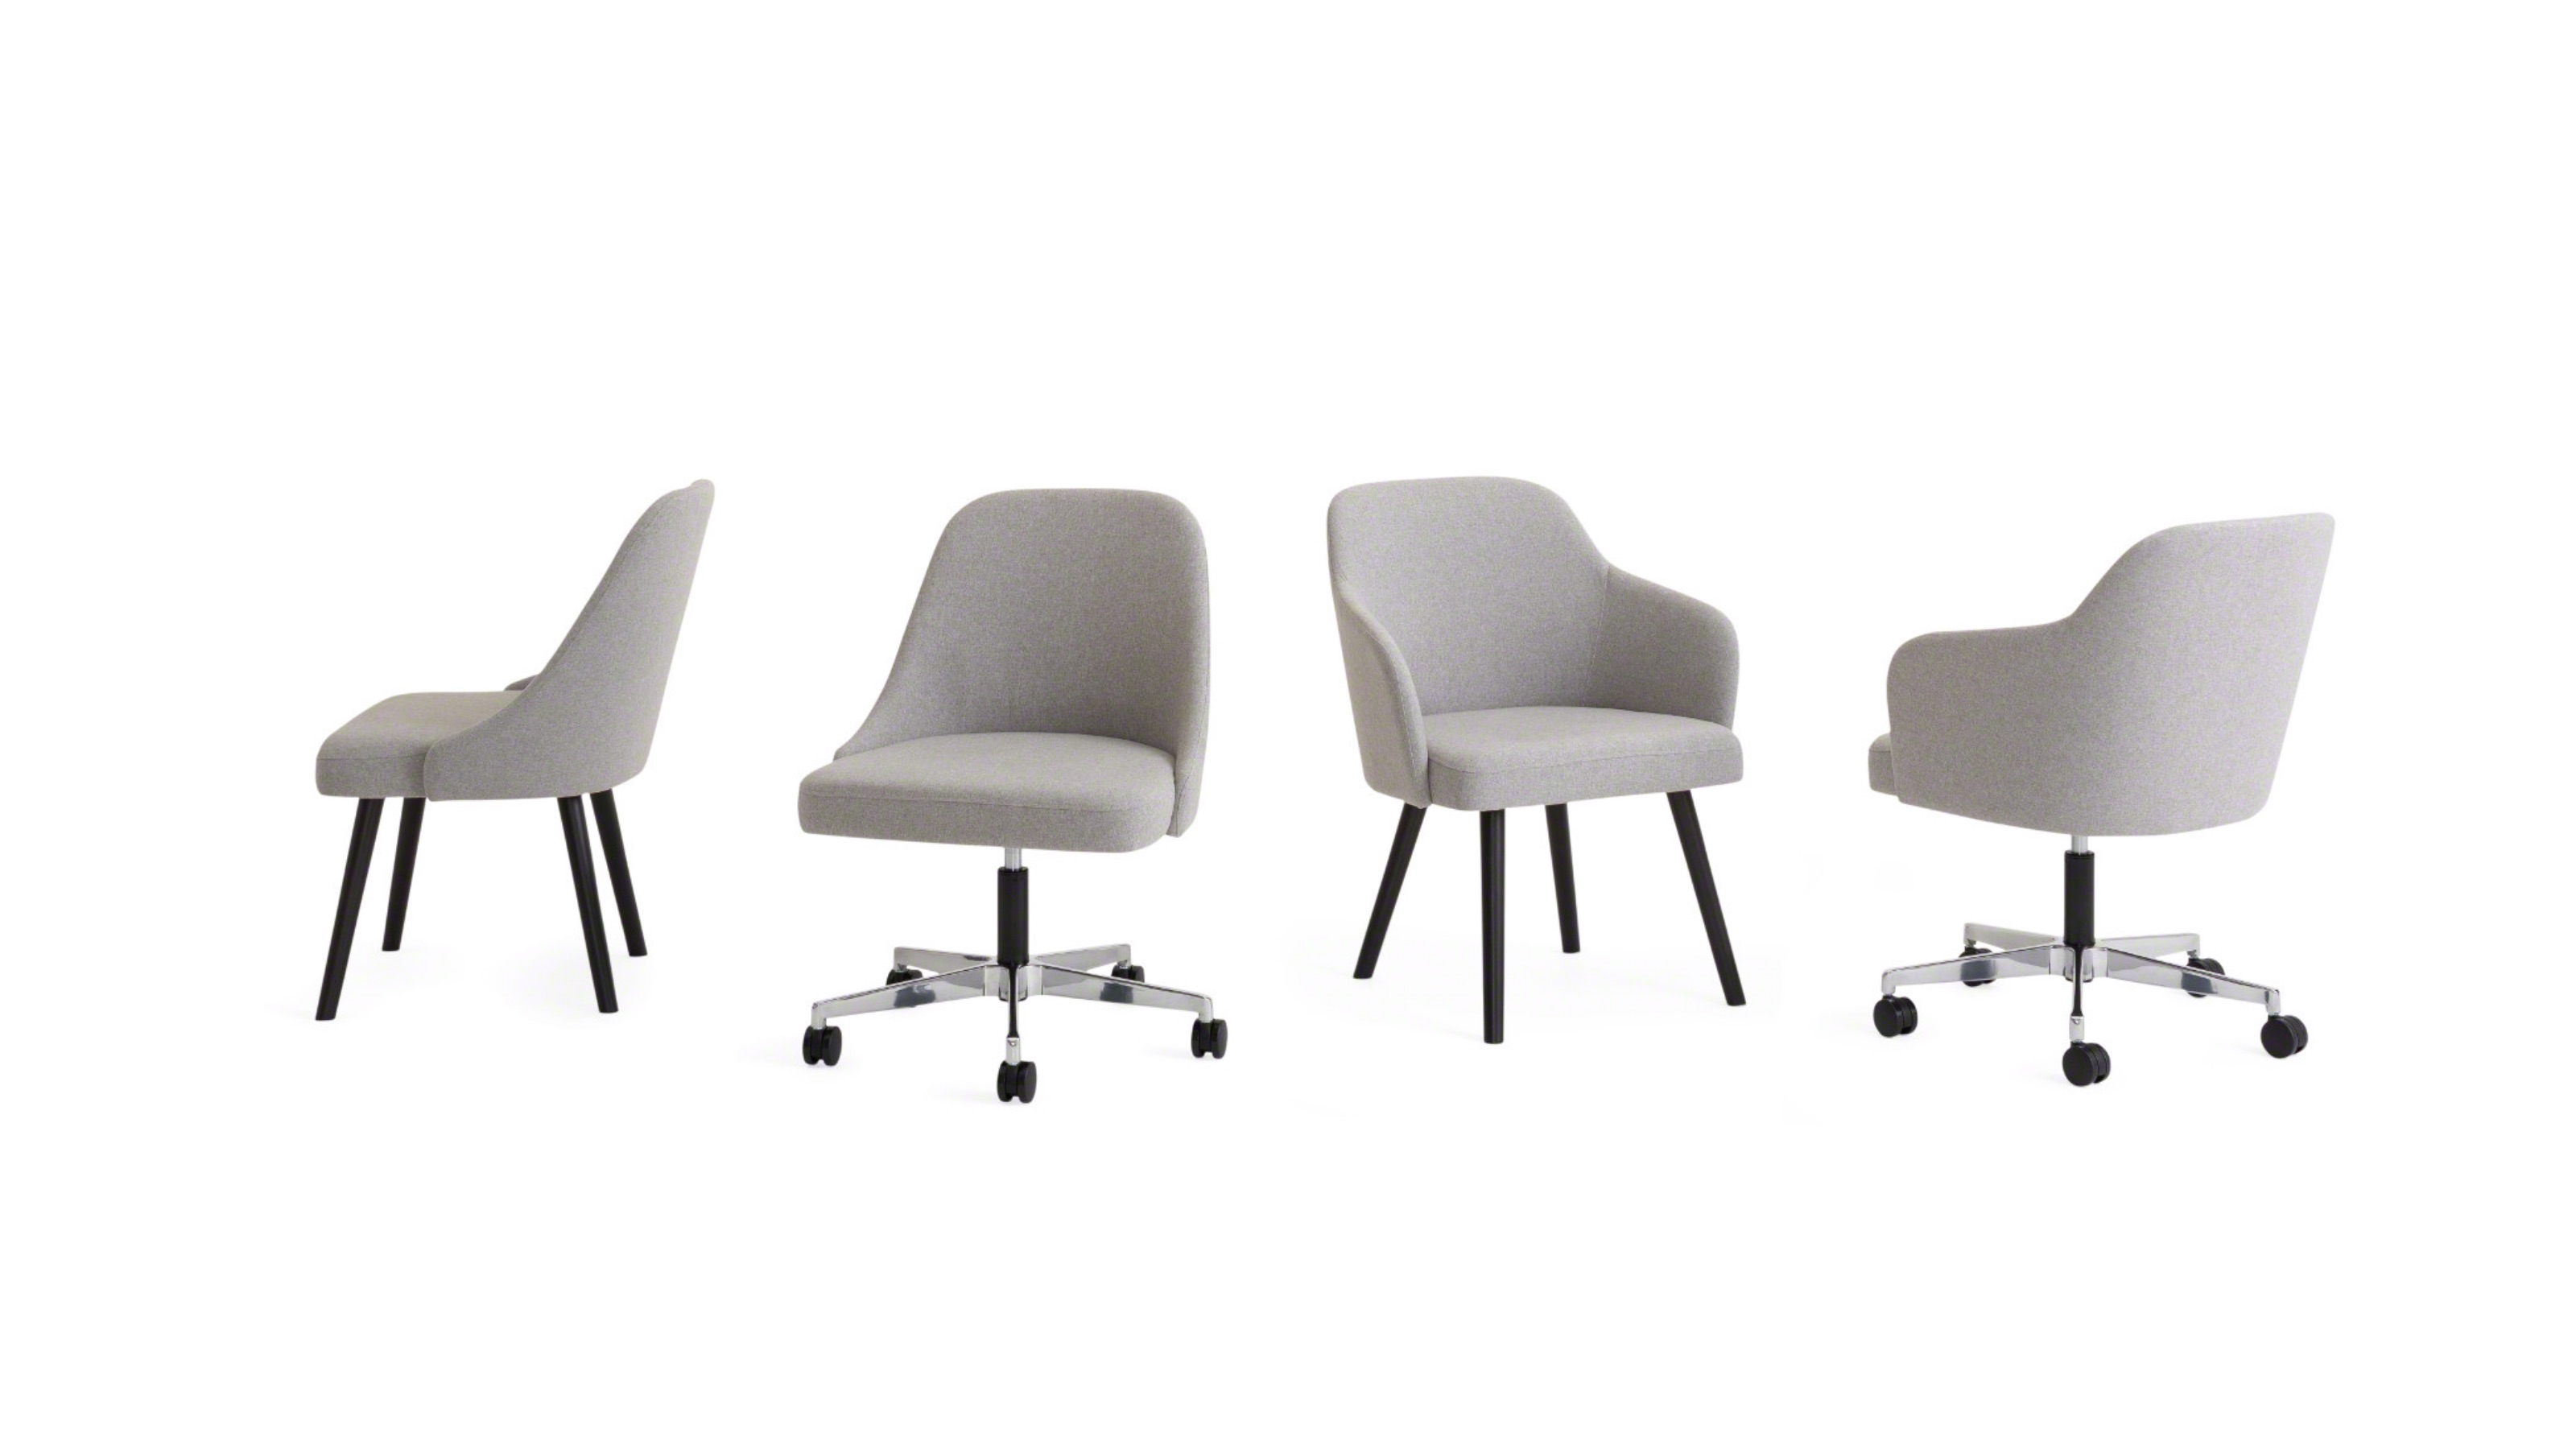 West Elm Work Sterling Guest Conference Chair Steelcase